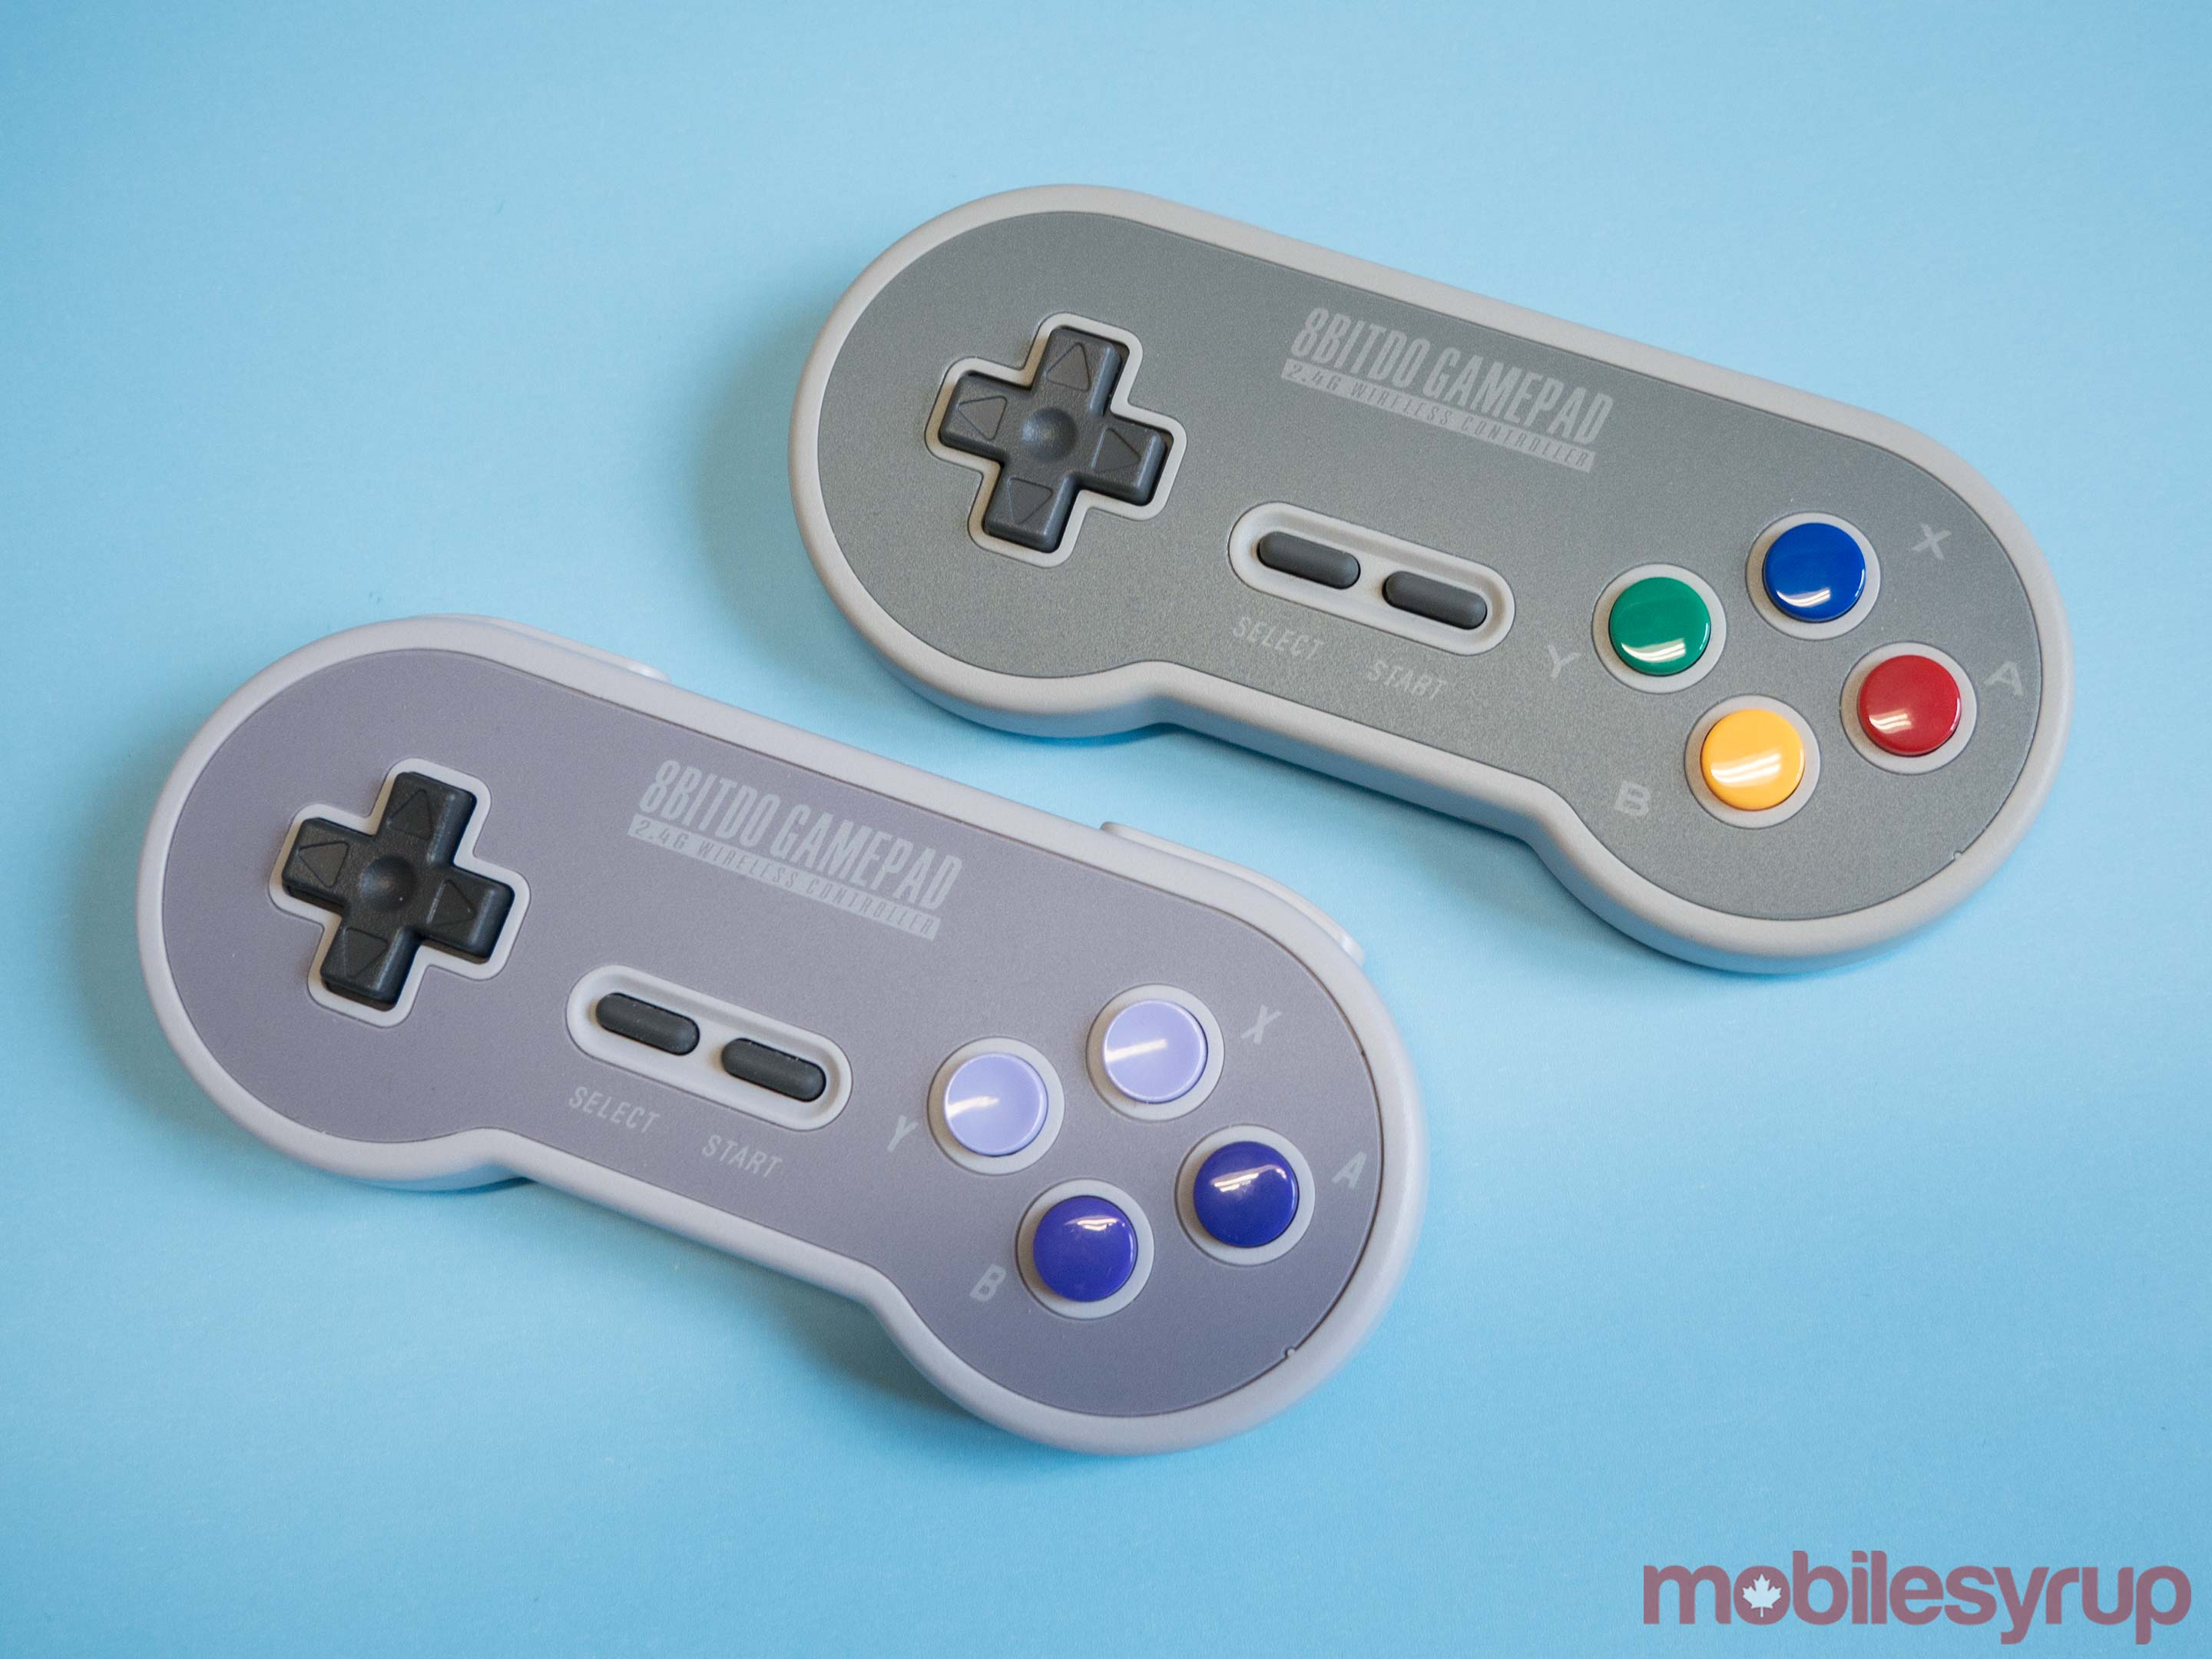 8bitdo's SN30 and SF30 controller